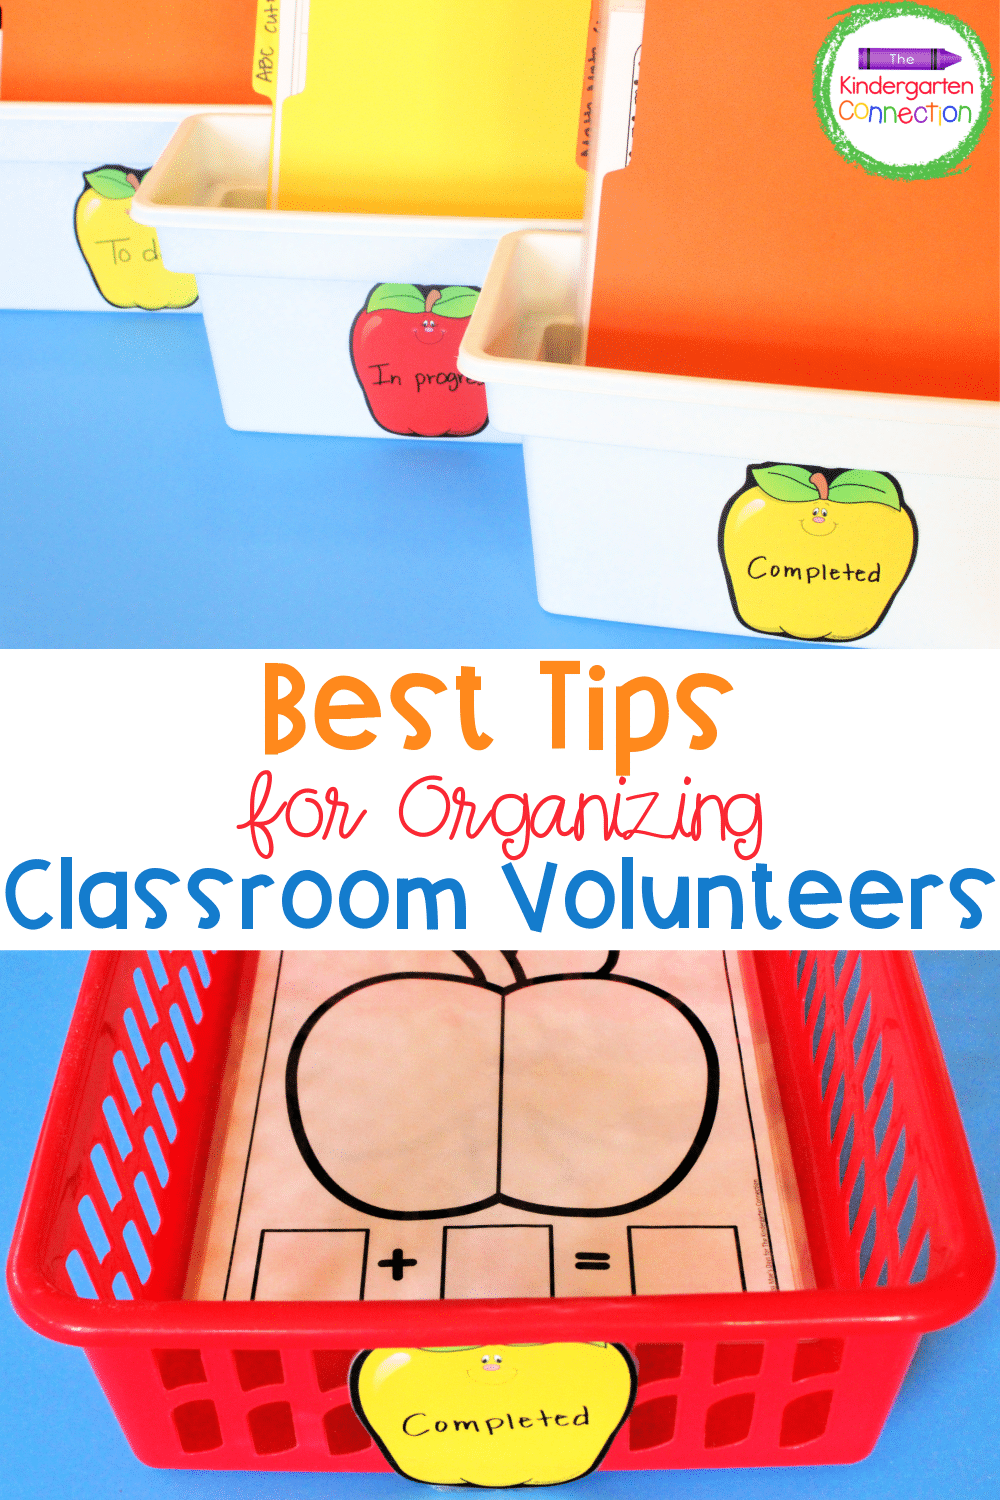 Make the most of all the help you get and check out these super useful tips for organizing volunteers in the classroom!